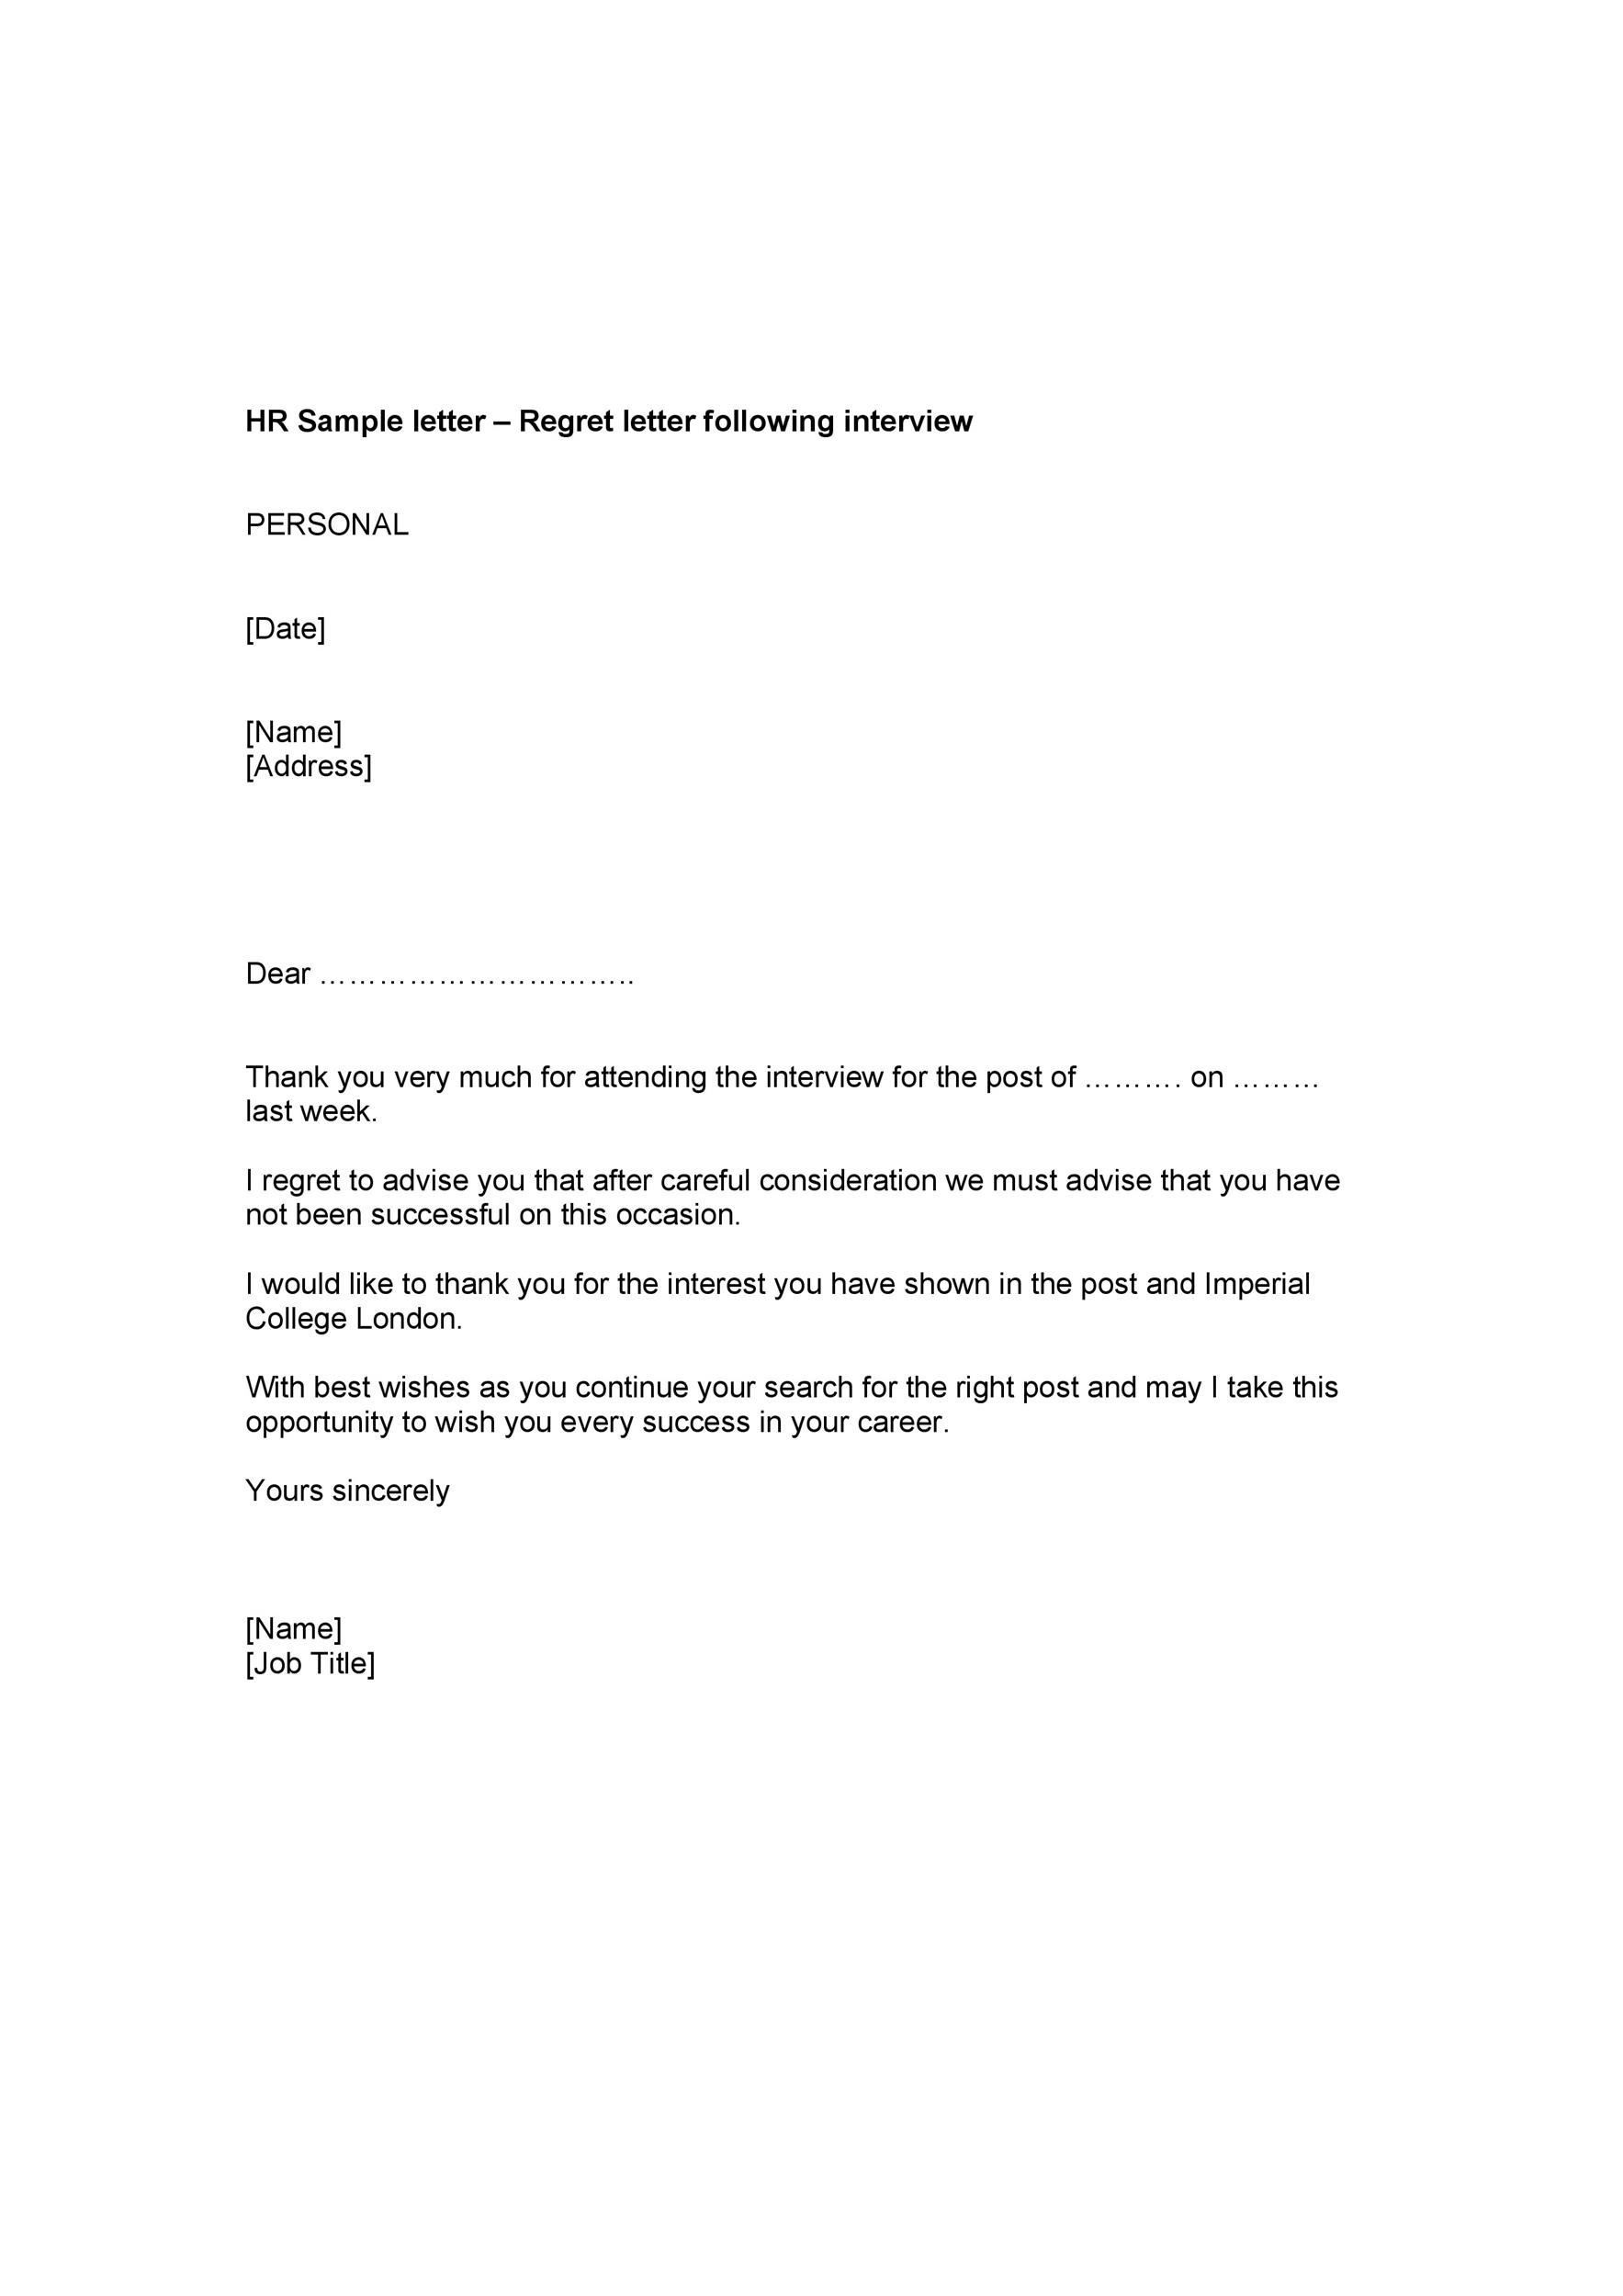 39 Job Rejection Letter Templates  Samples ᐅ Template Lab